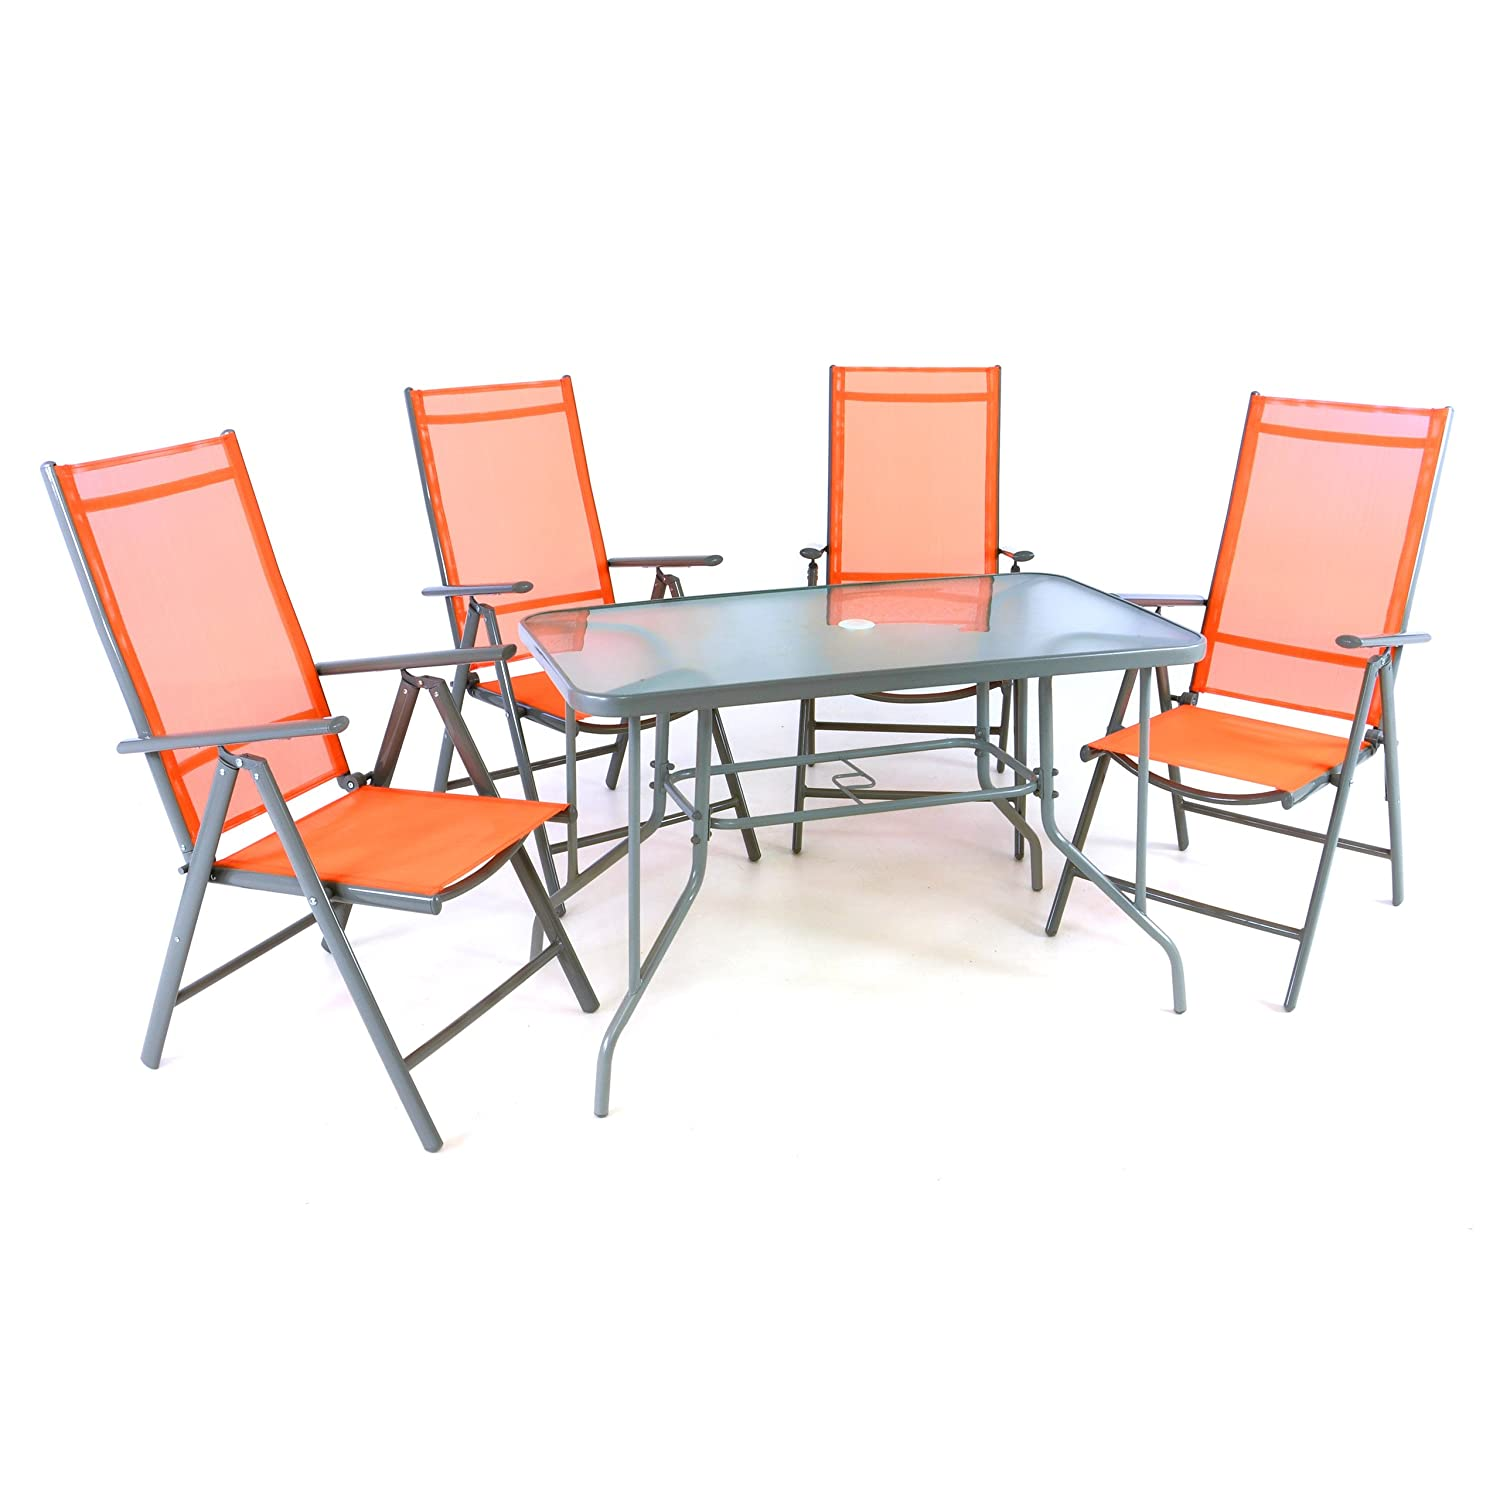 5er set sitzgarnitur sitzgruppe gartengarnitur glastisch eckig orange balkon glastisch 1 tisch 4. Black Bedroom Furniture Sets. Home Design Ideas